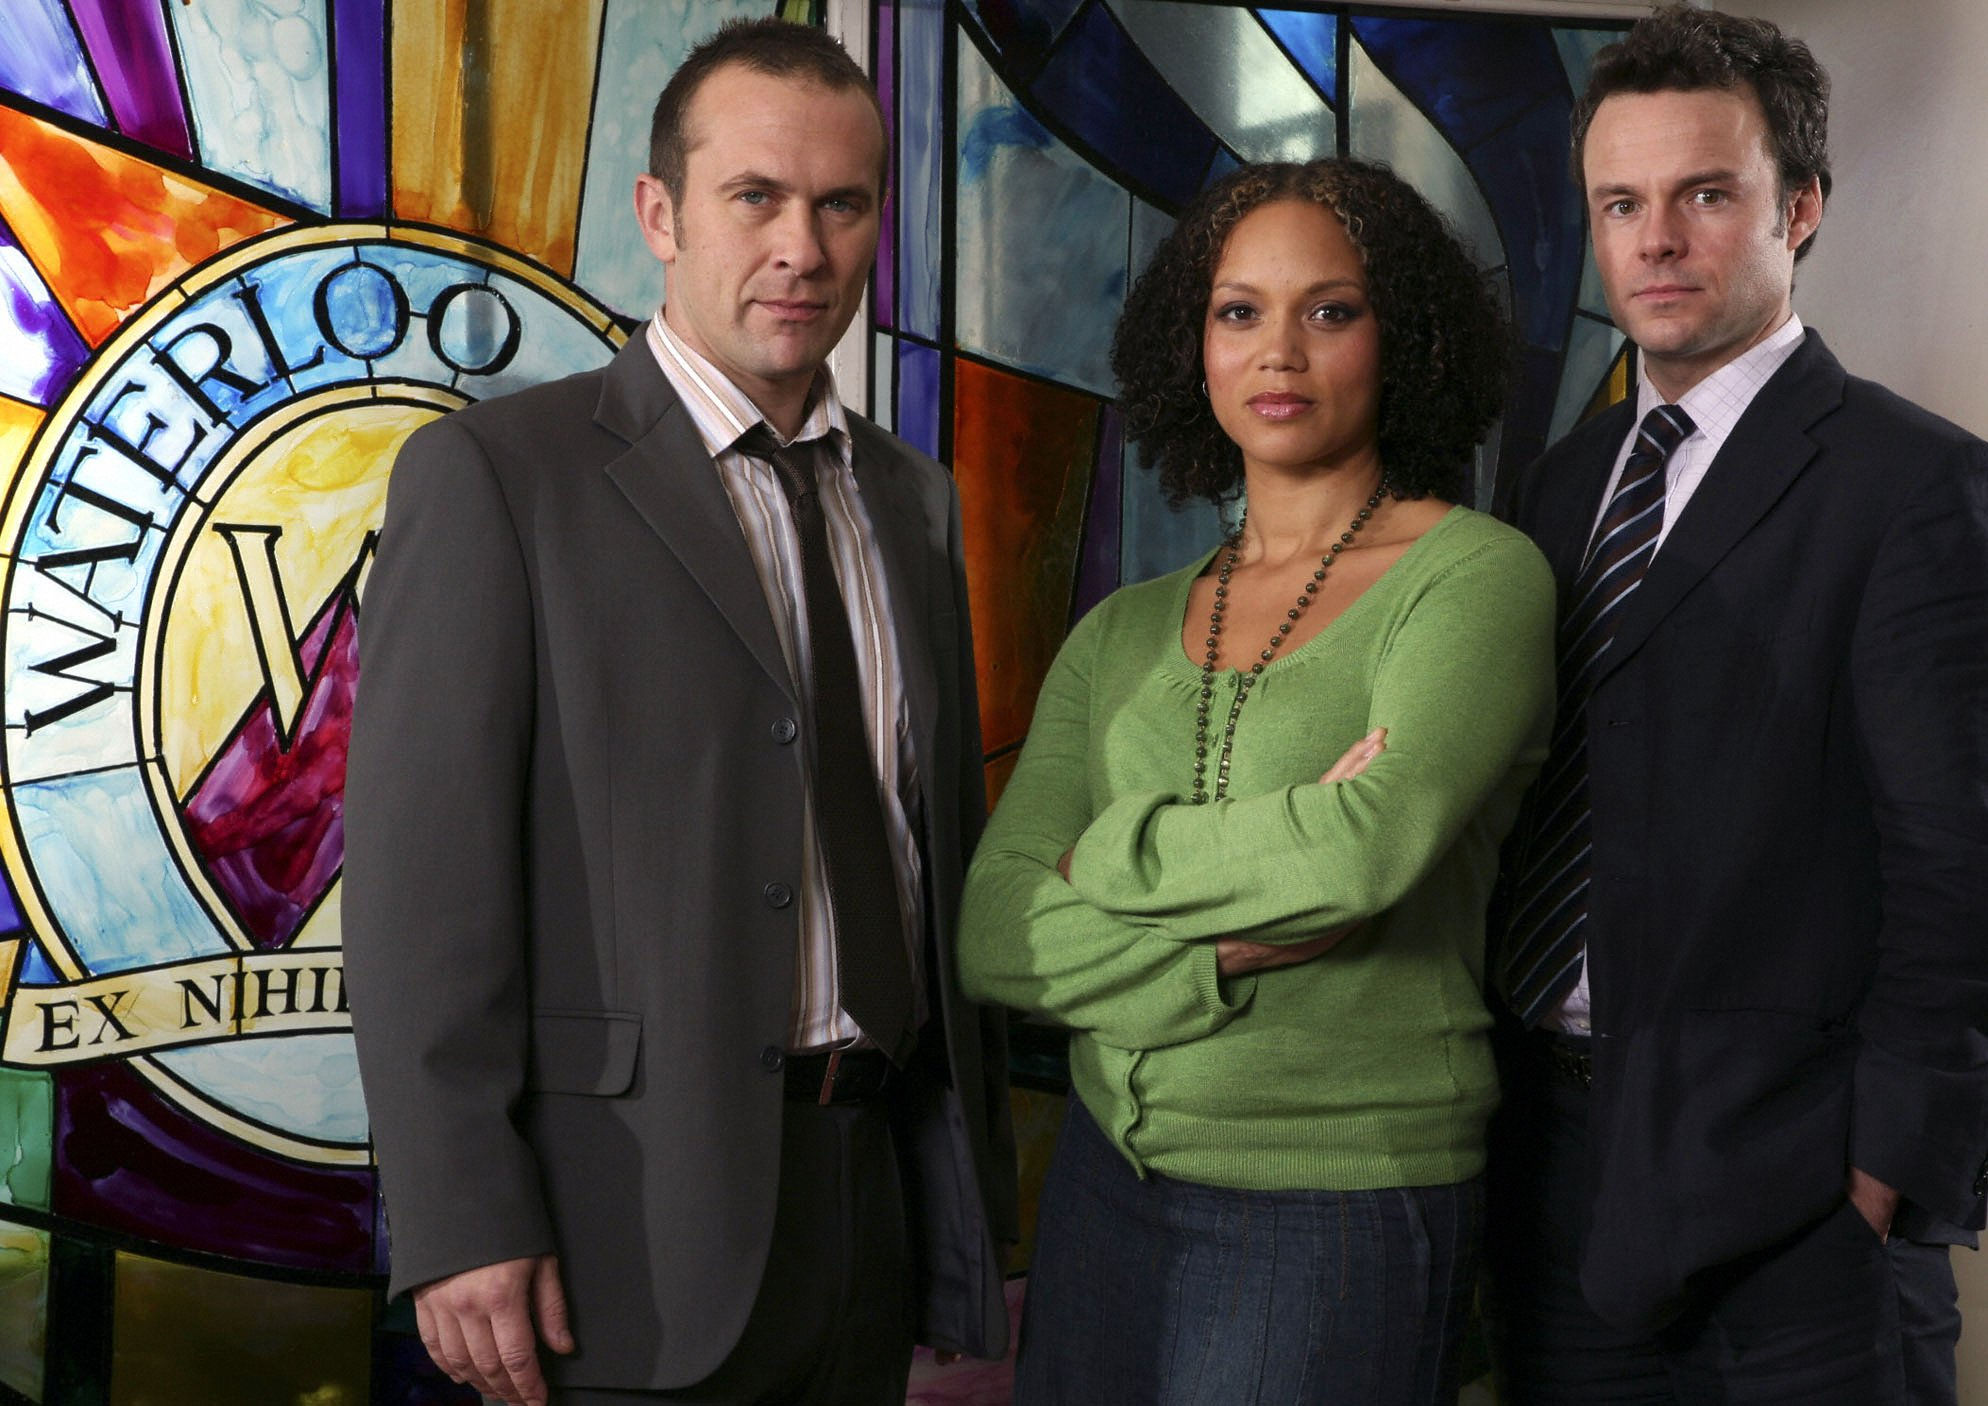 Arrest warrant issued for Waterloo Rd actor